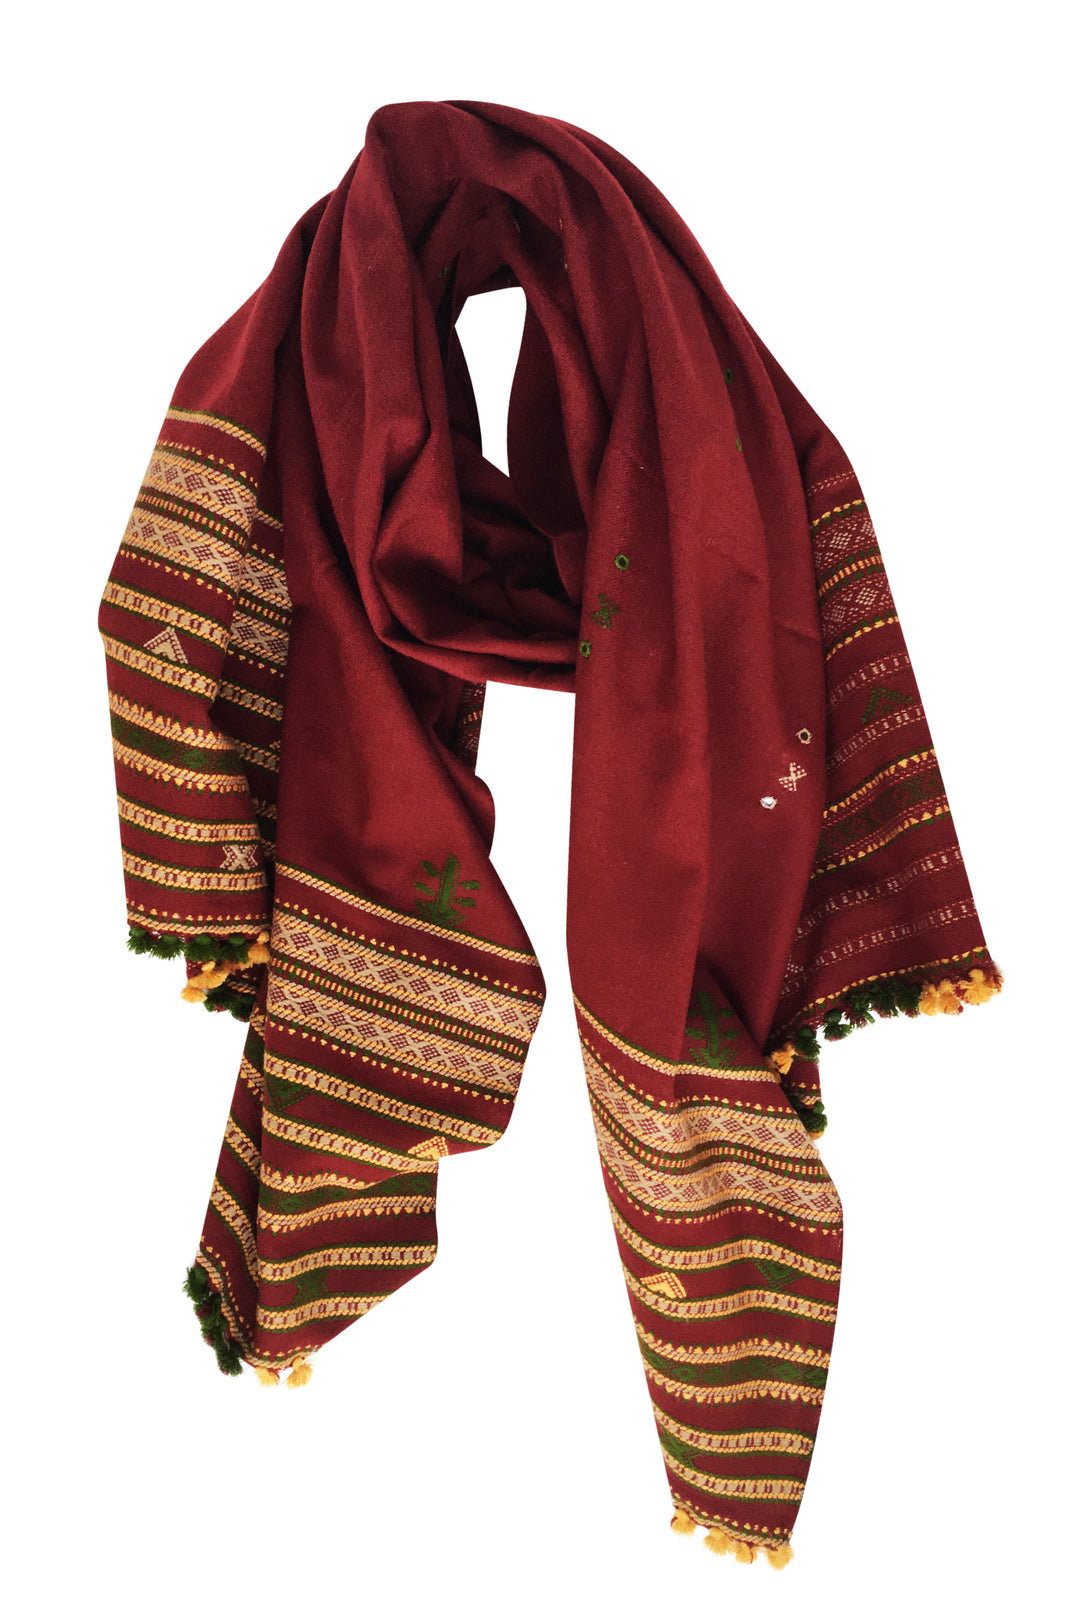 kutch embroidered oversized shawl vindaloo